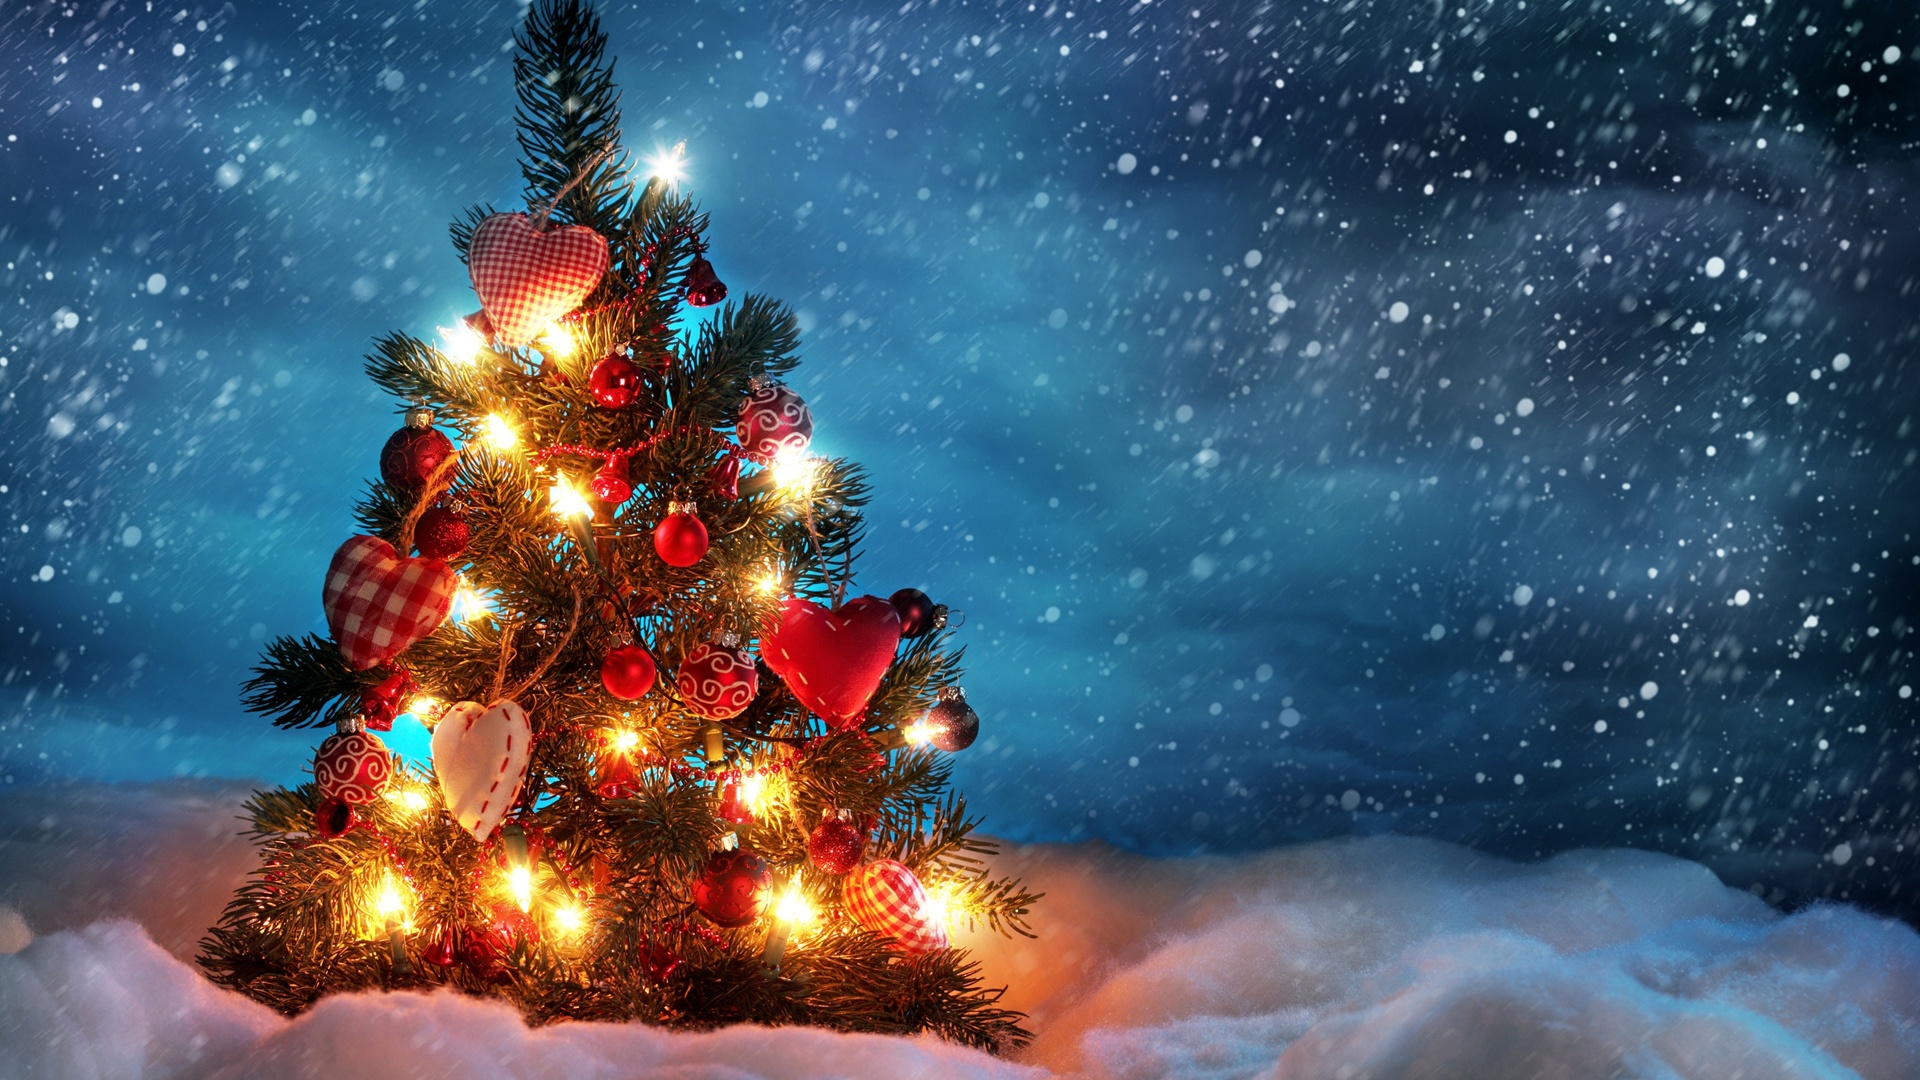 Beautiful Christmas Tree Snow - wallpaper